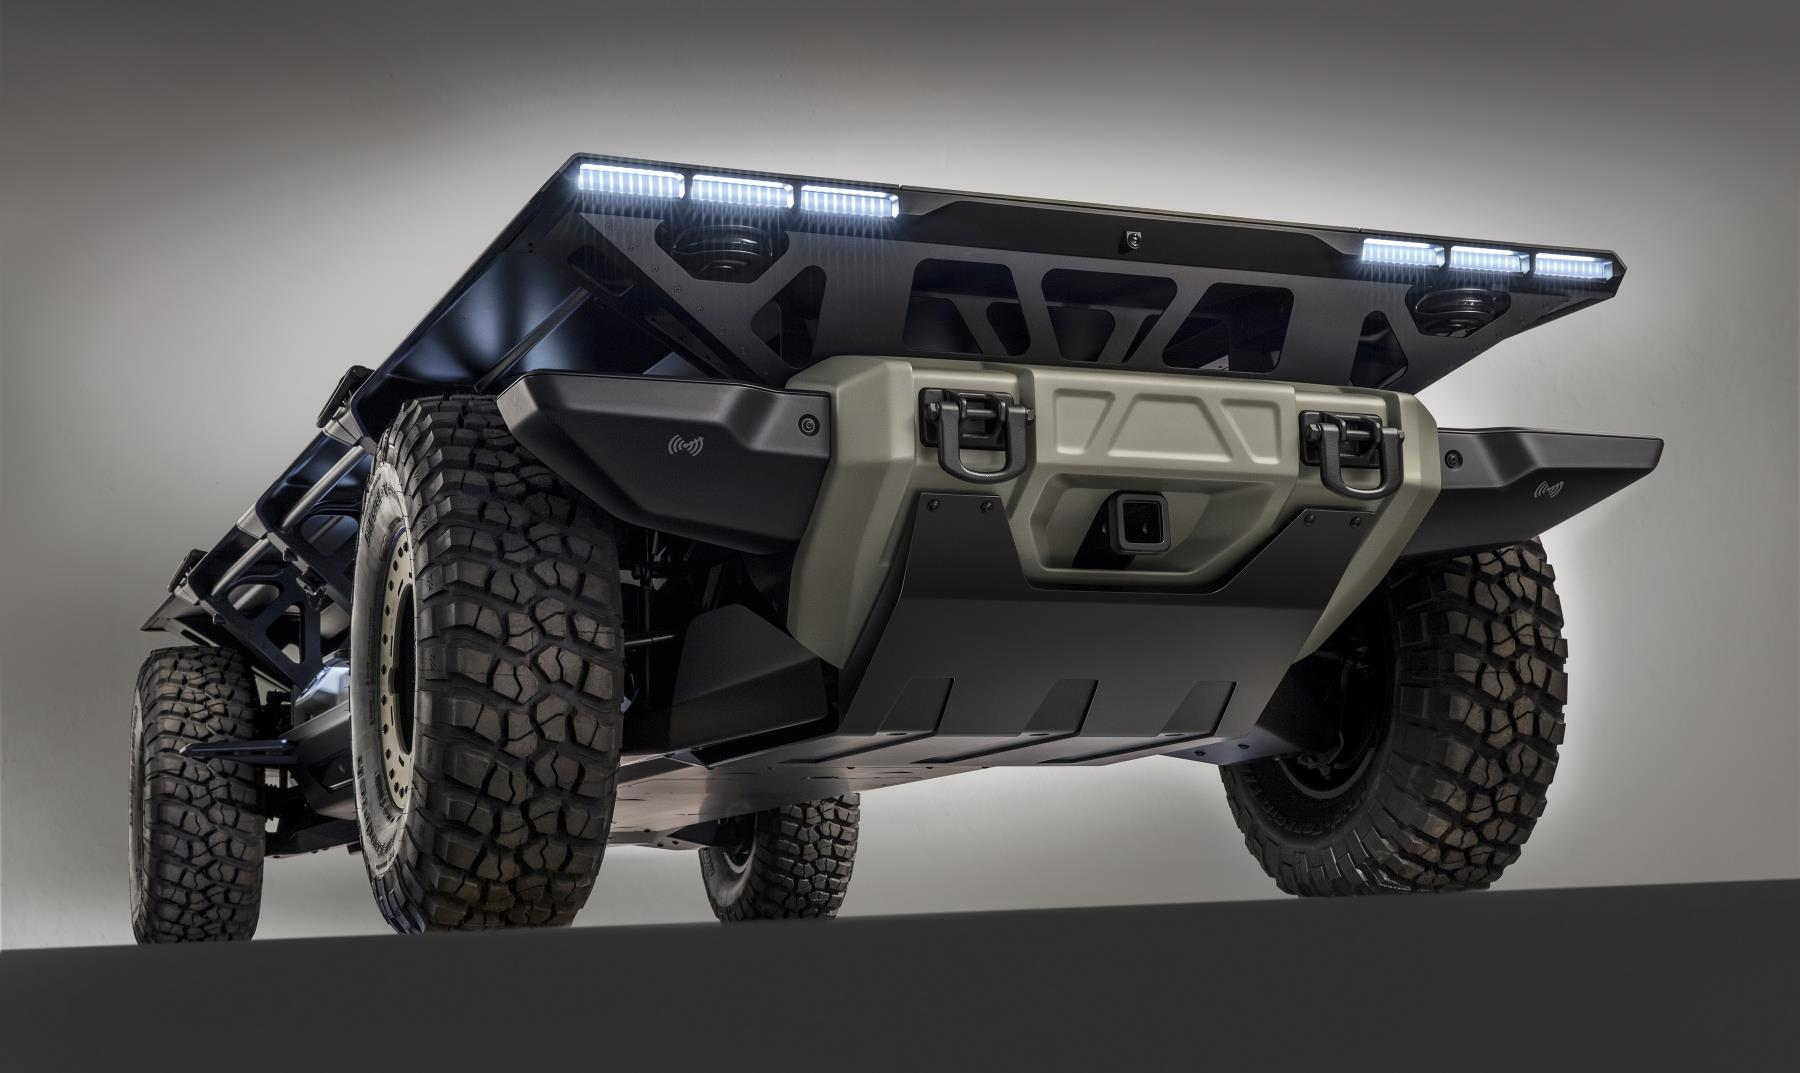 The Silent Utility Rover Universal Superstructure Surus